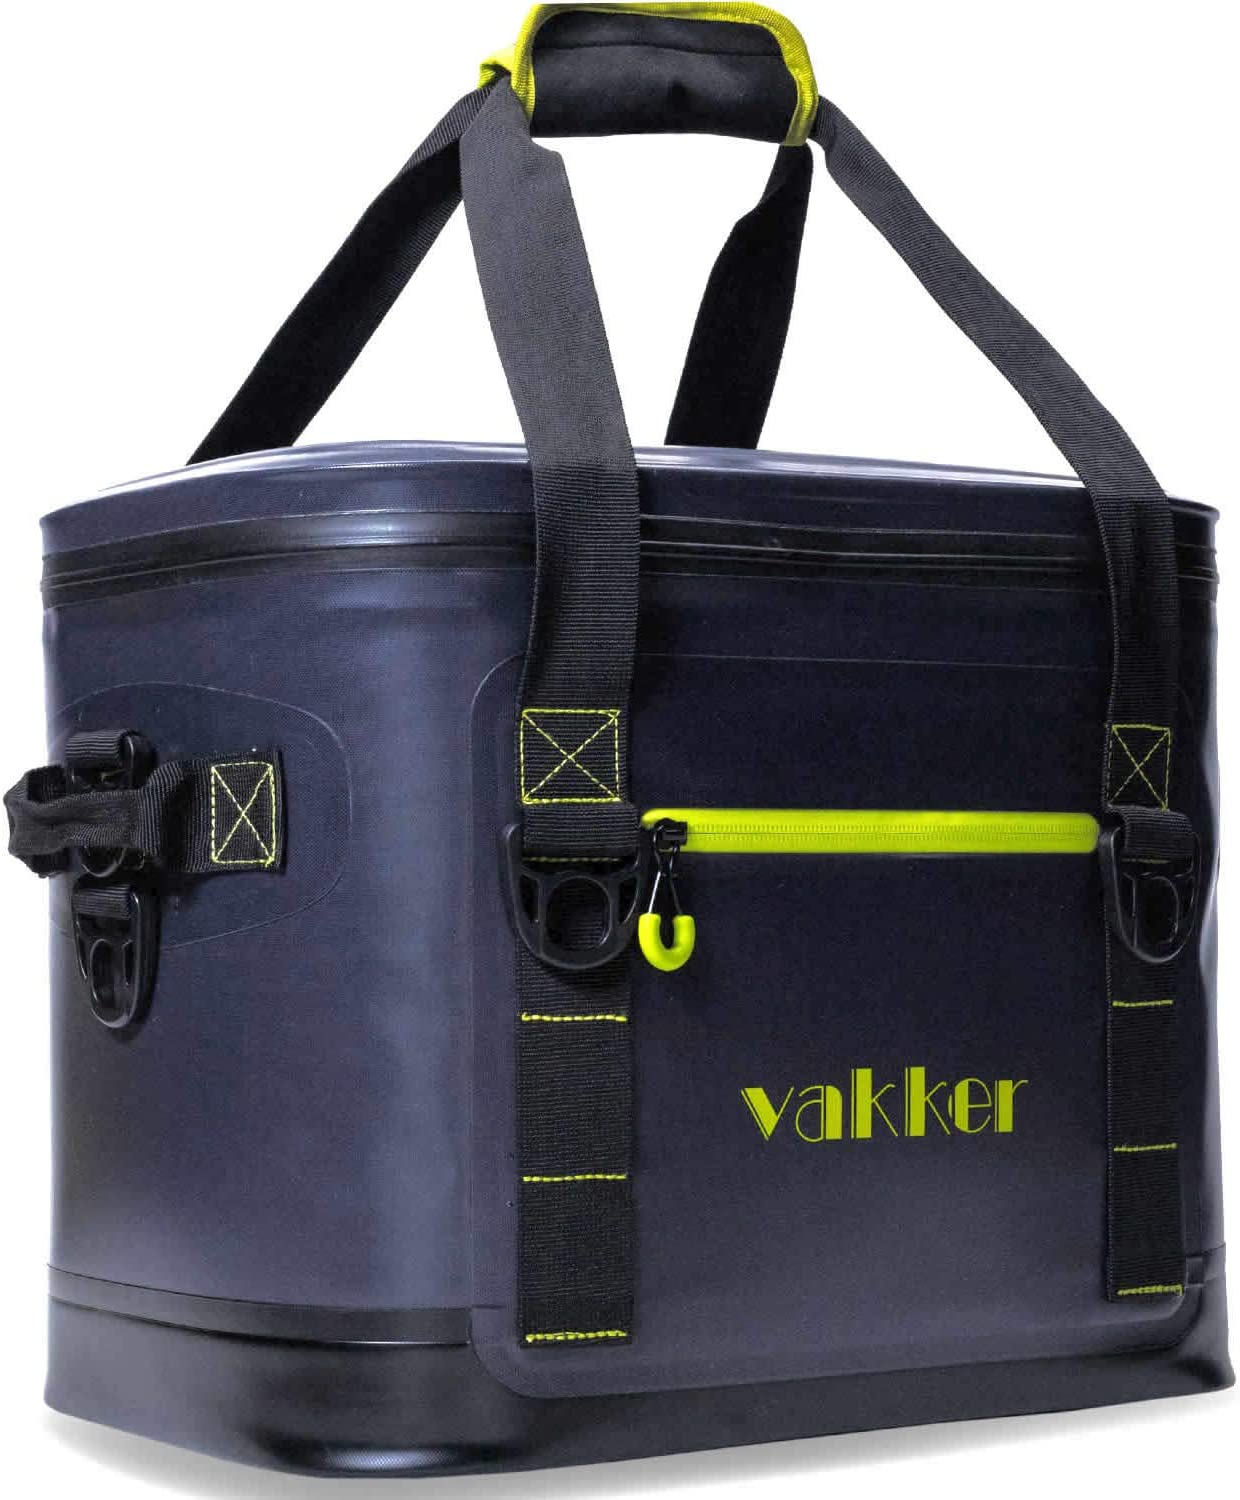 VAKKER 24 30 Can Insulated Cooler 3 Ice Over item Max 48% OFF handling Waterpro Bag Life Days